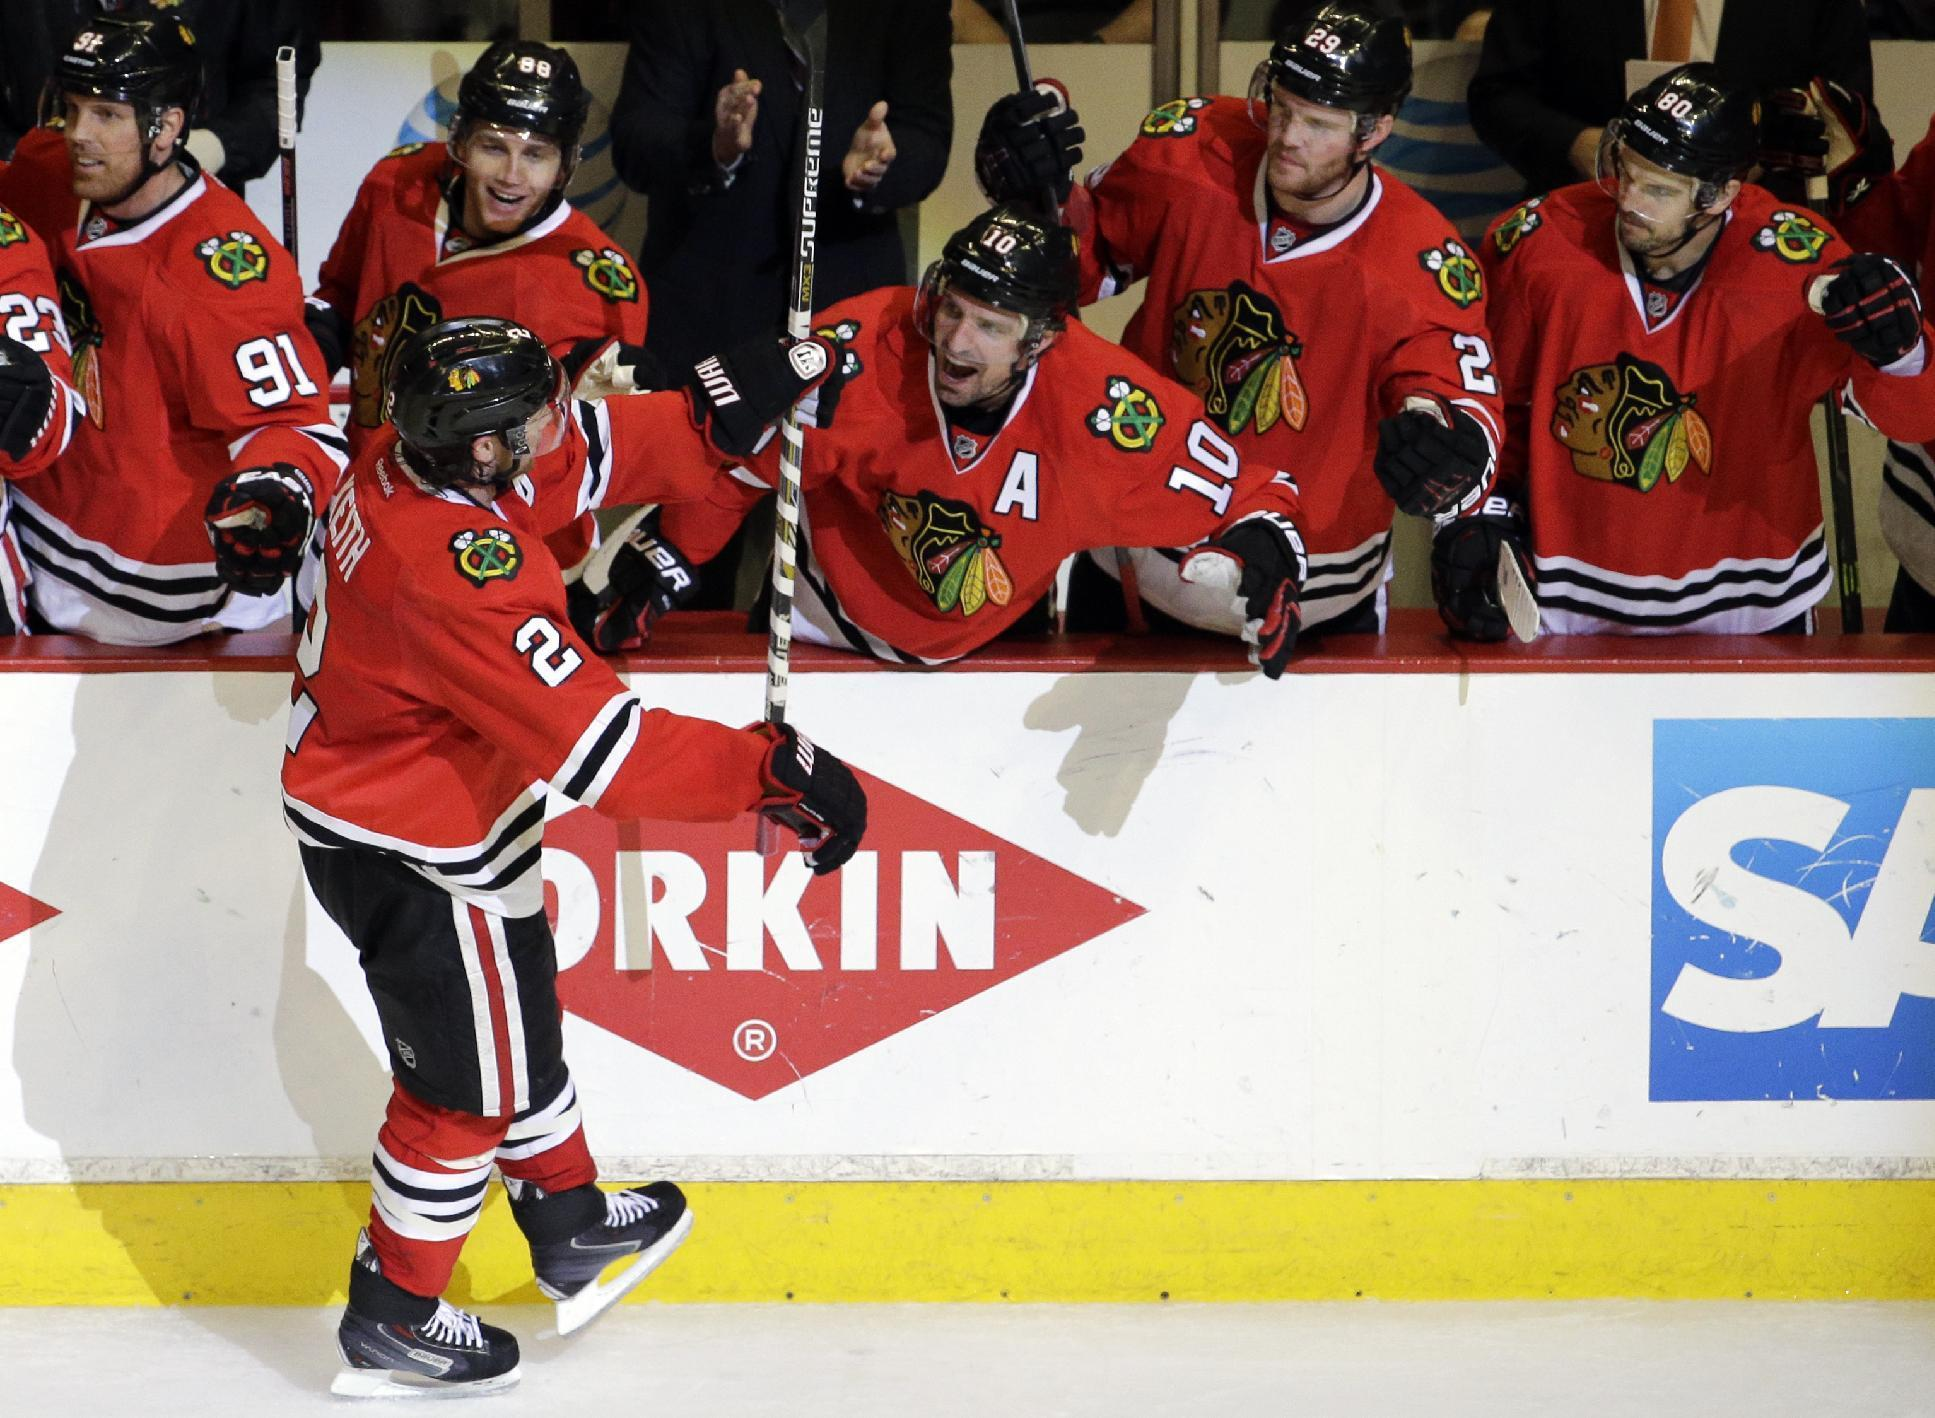 Duncan Keith daggers Predators to clinch first round series